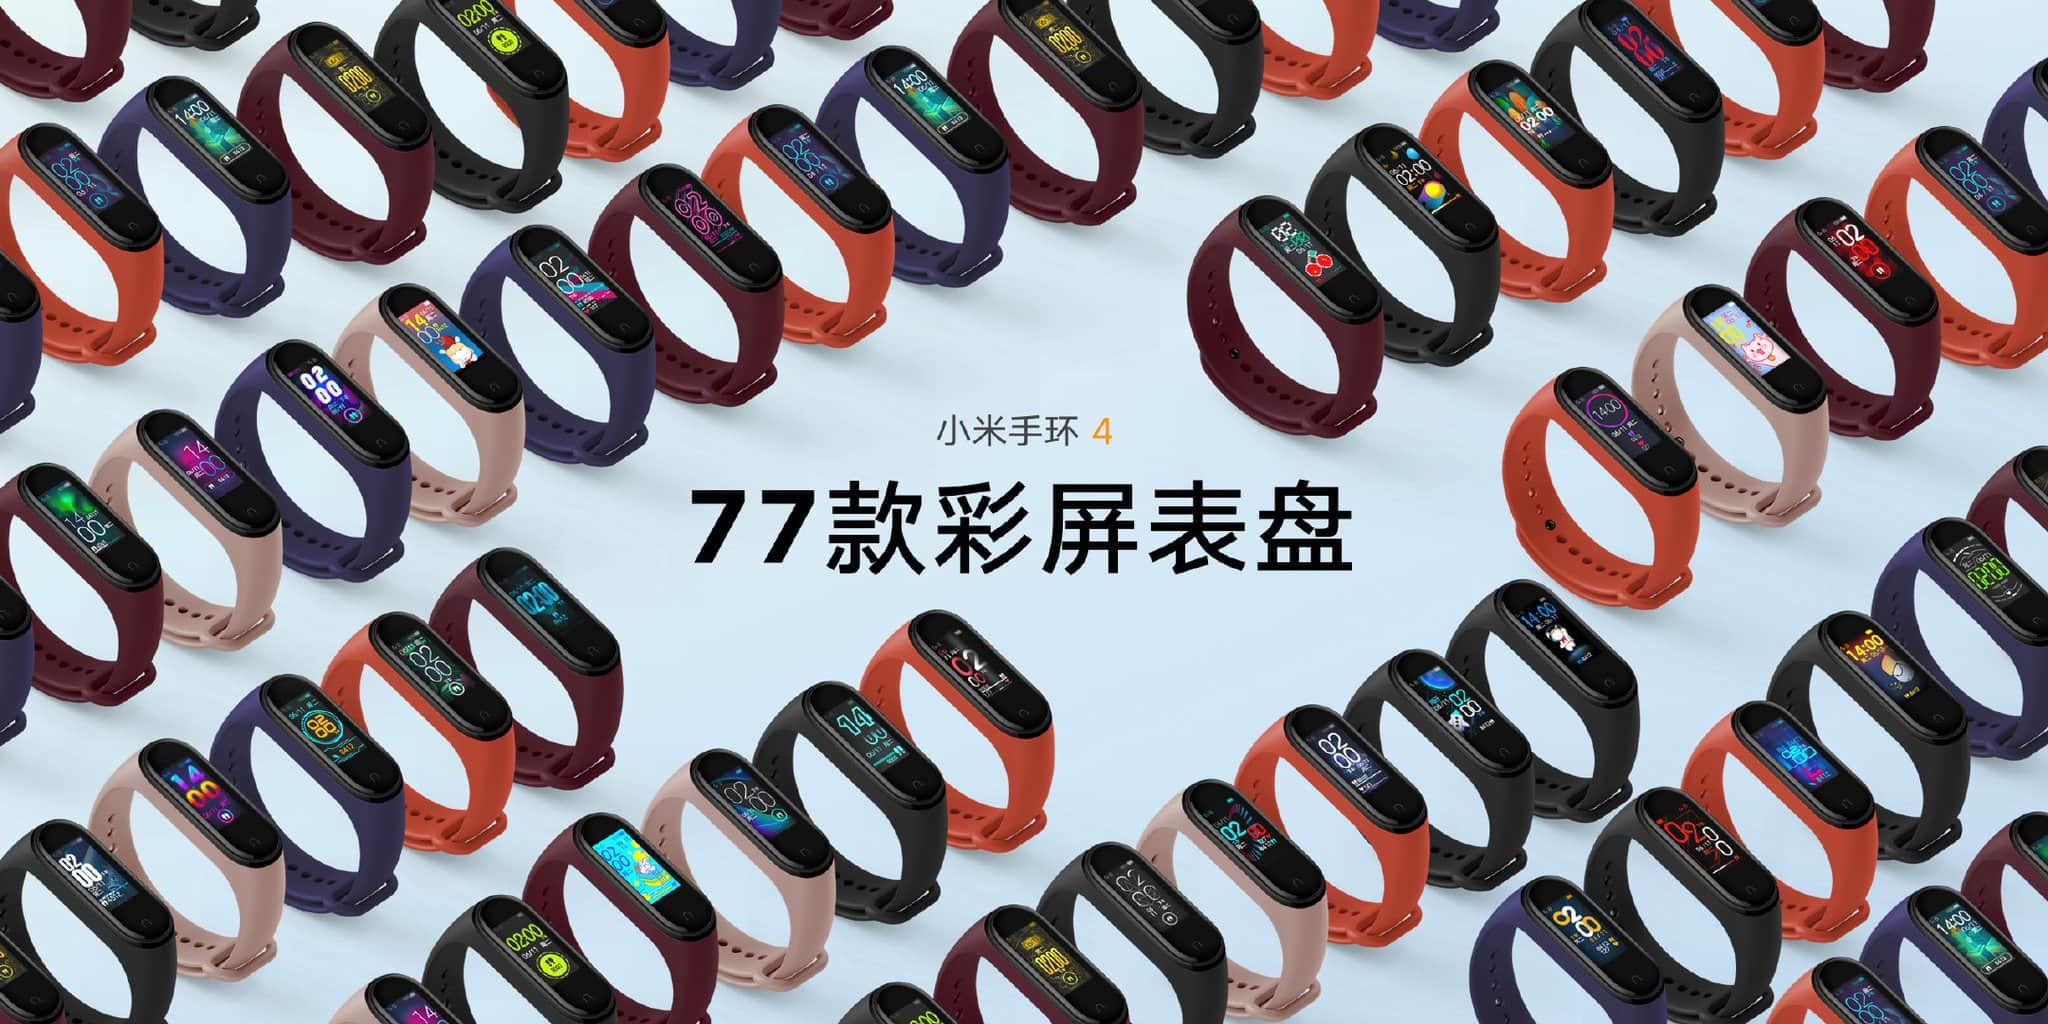 Mi Band 4 Launched - Features, Specifications, Price